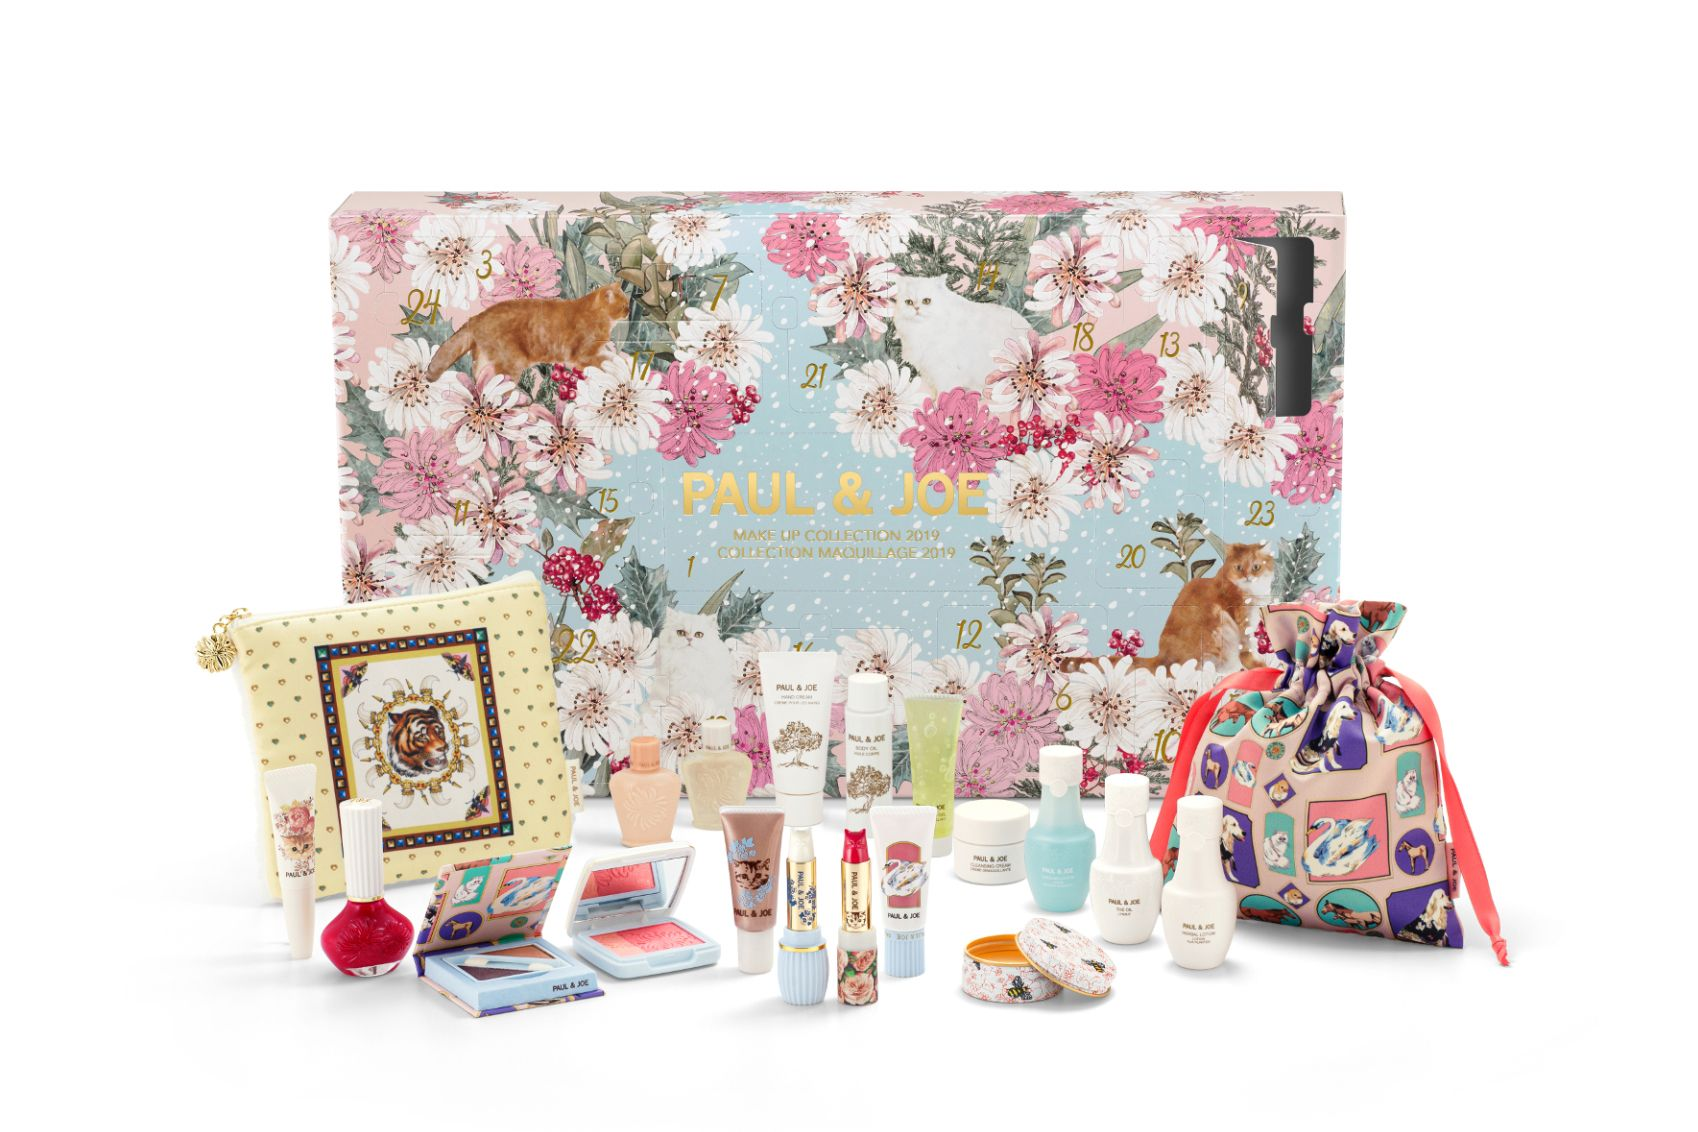 The Most Luxurious Advent Calendars For Christmas 2019 From Diptyque. Charlotte Tilbury. Tiffany & Co. And More   Tatler Philippines